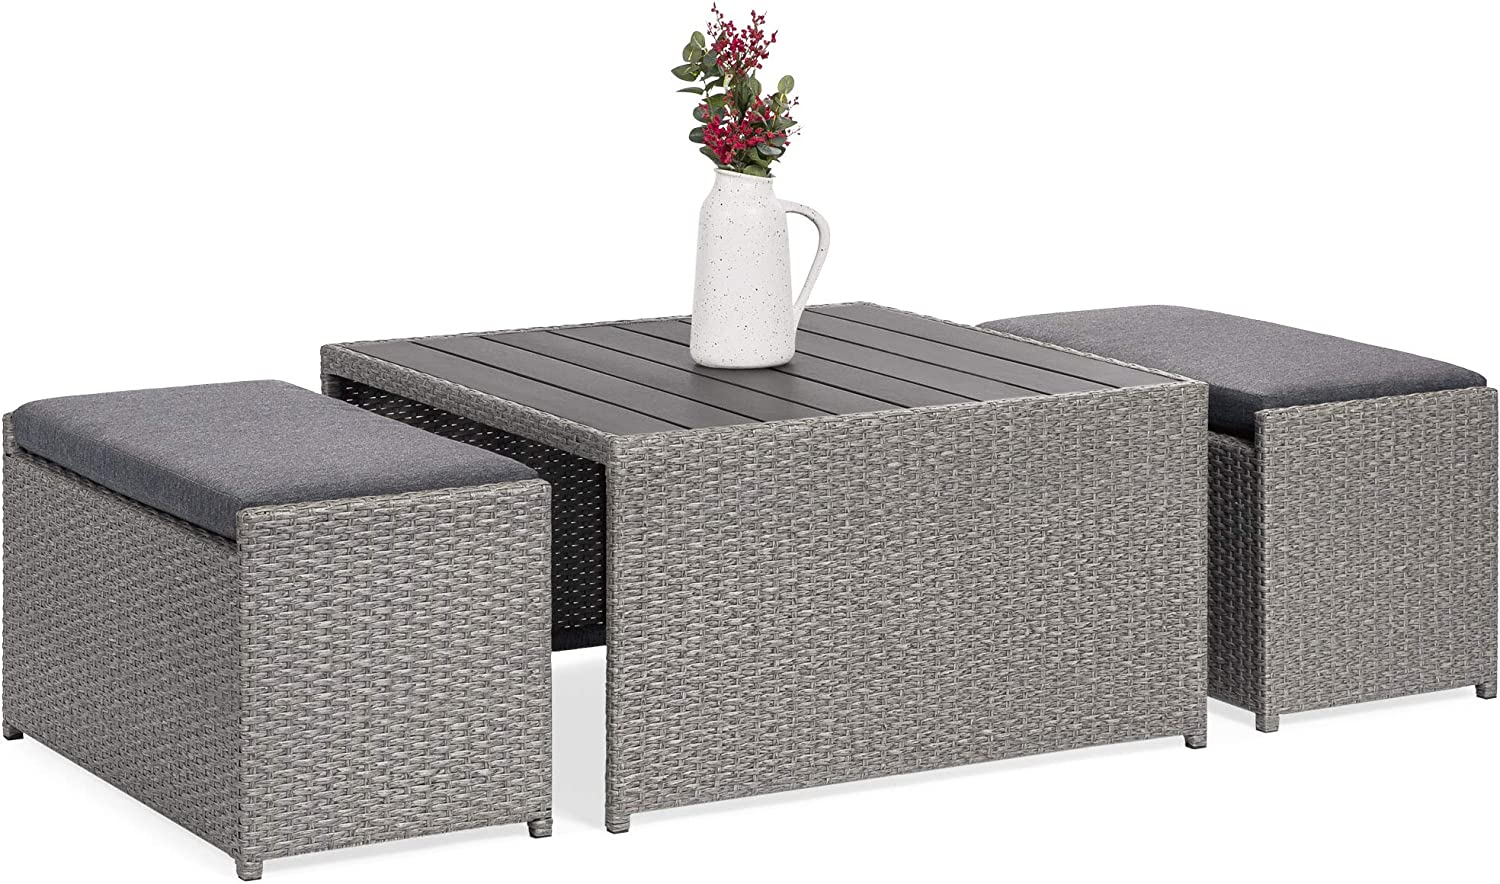 Best Choice Products 3-Piece Outdoor Modern Wicker Coffee Table Set for Patio, Porch w 2 Ottoman Benches – Gray